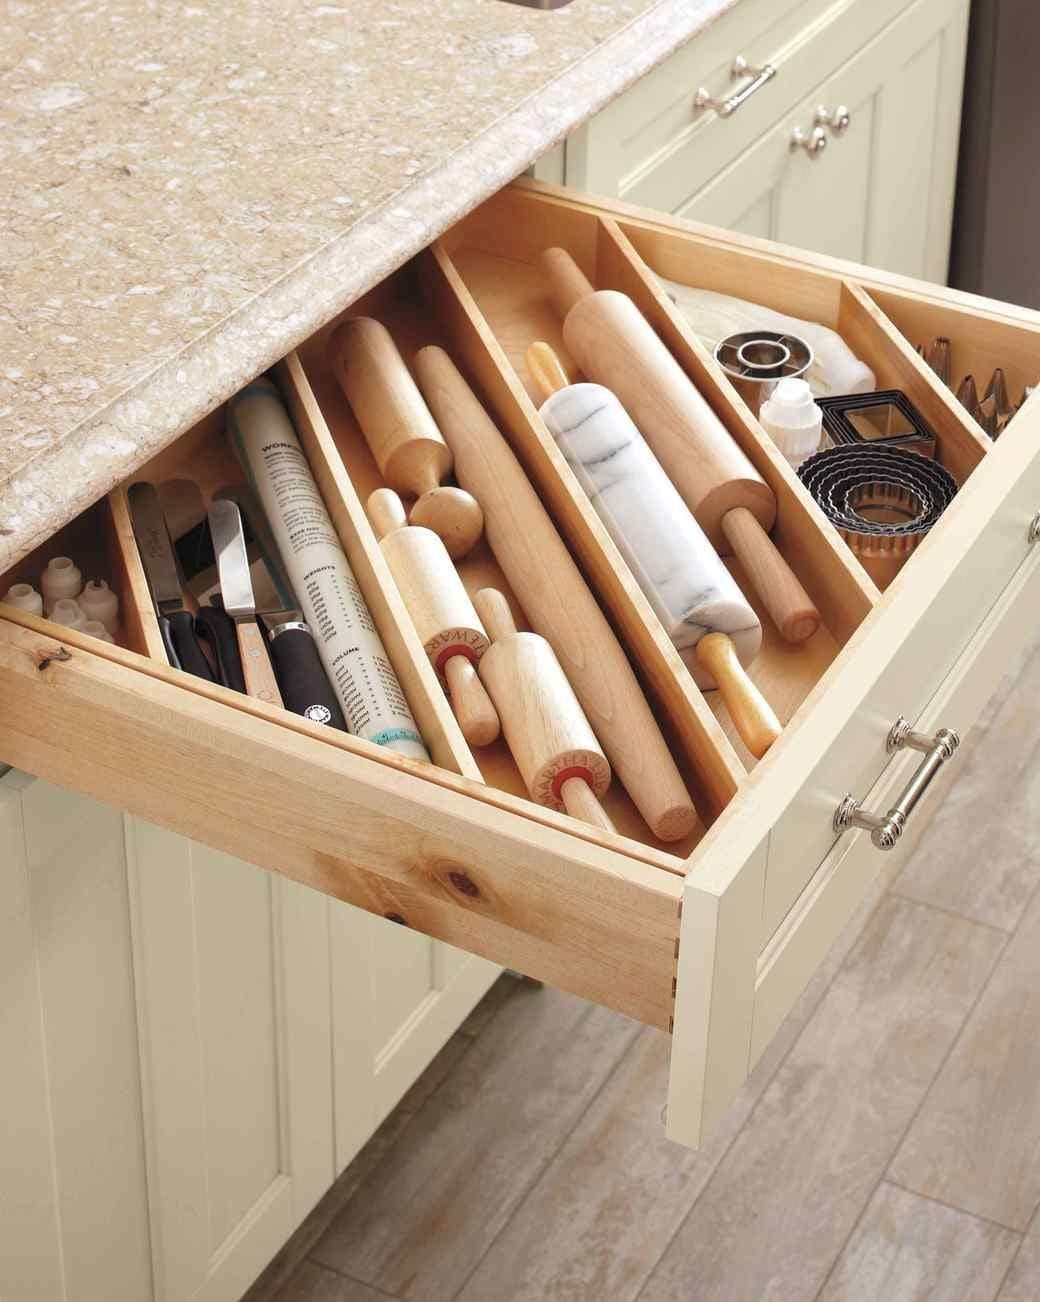 0a35406aea2a Diagonal Drawer Dividers to accomodate long objects - DIY Ideas for  Impeccably Organized Drawers